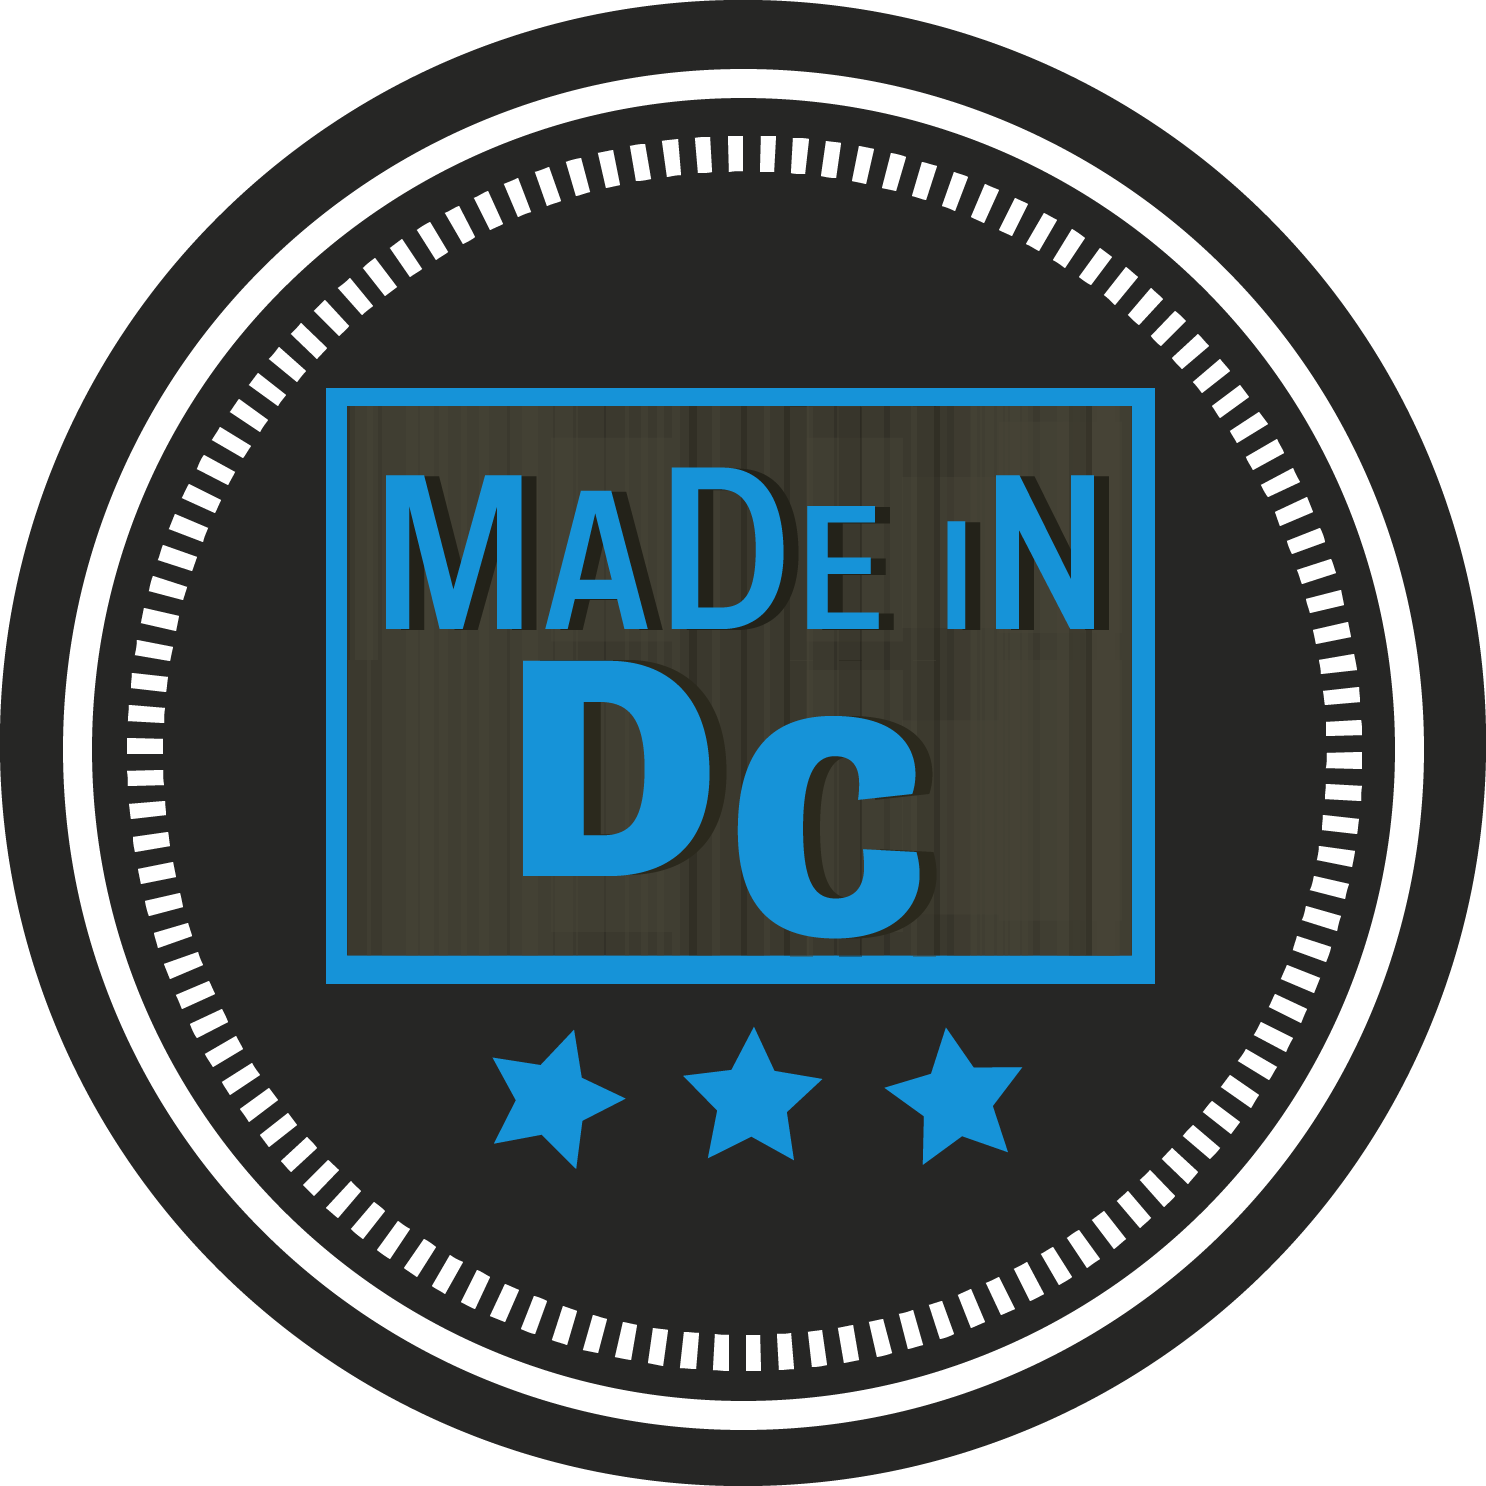 Made in DC 2019